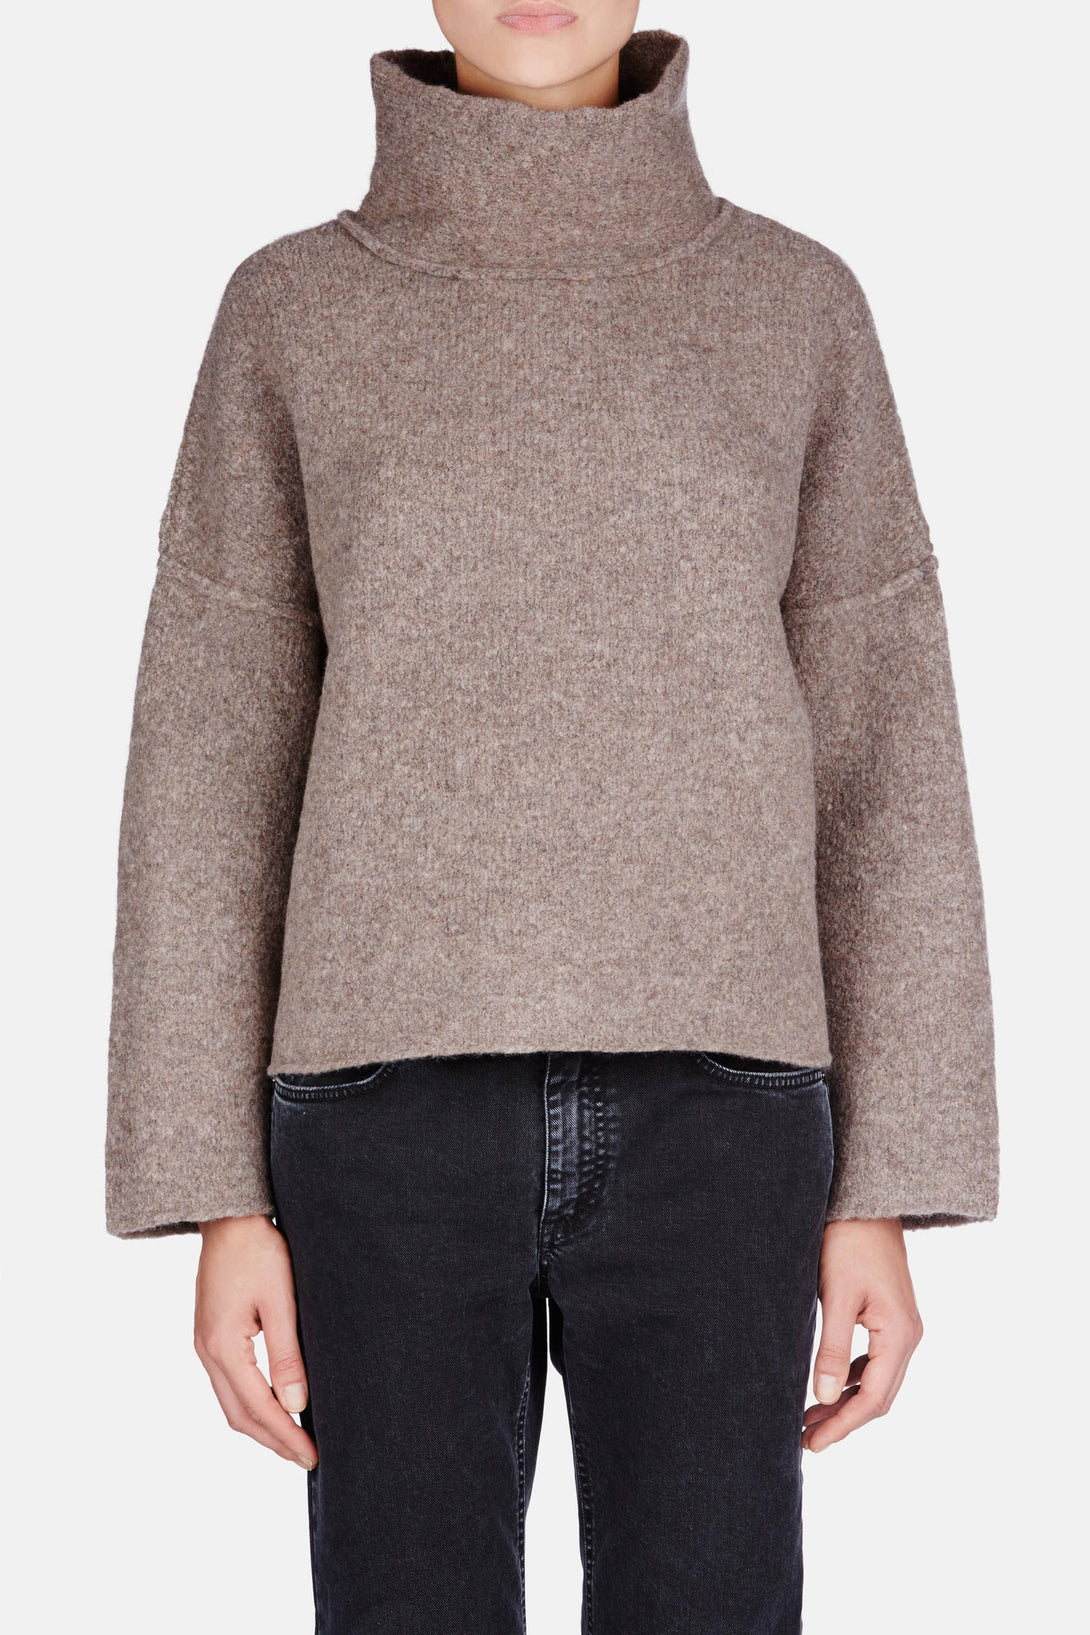 Highland Loose Turtleneck - Oak